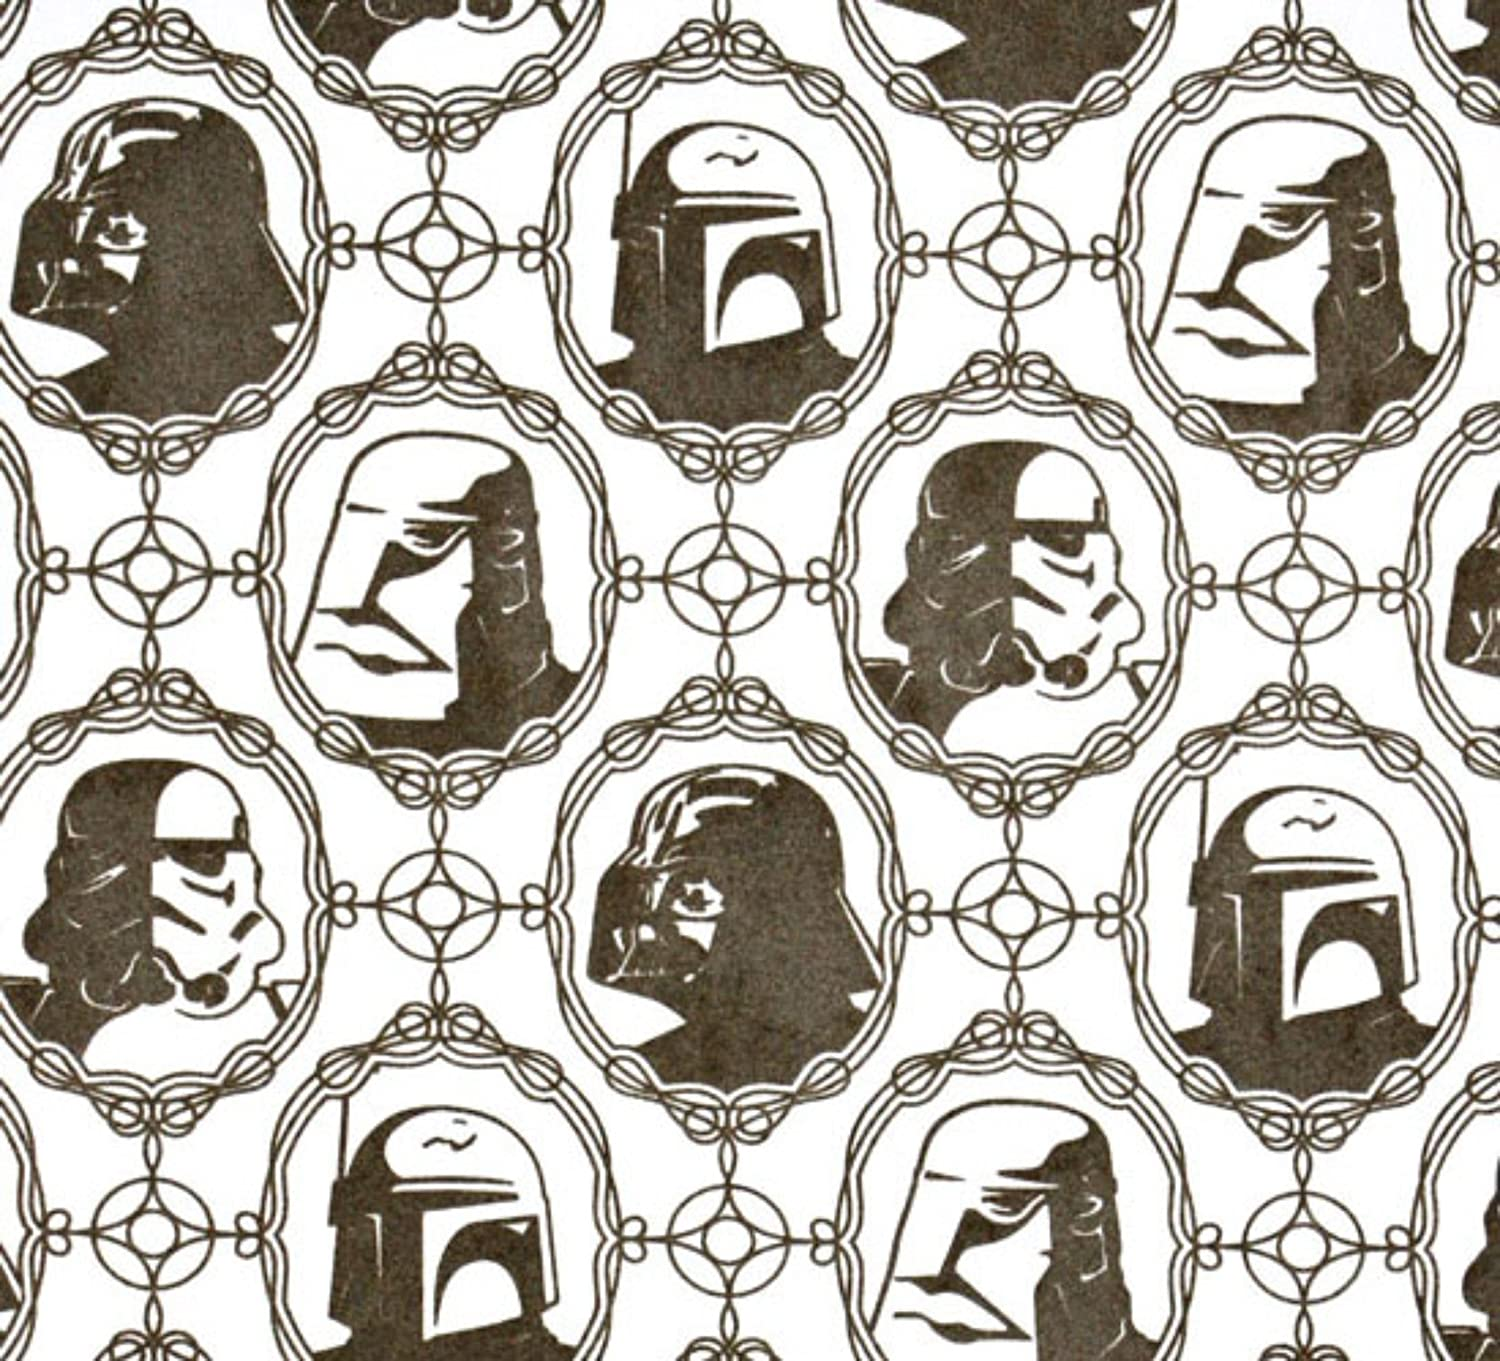 DOUBLE ROLL 1970s Vintage New Star Wars Wallpaper Amazon